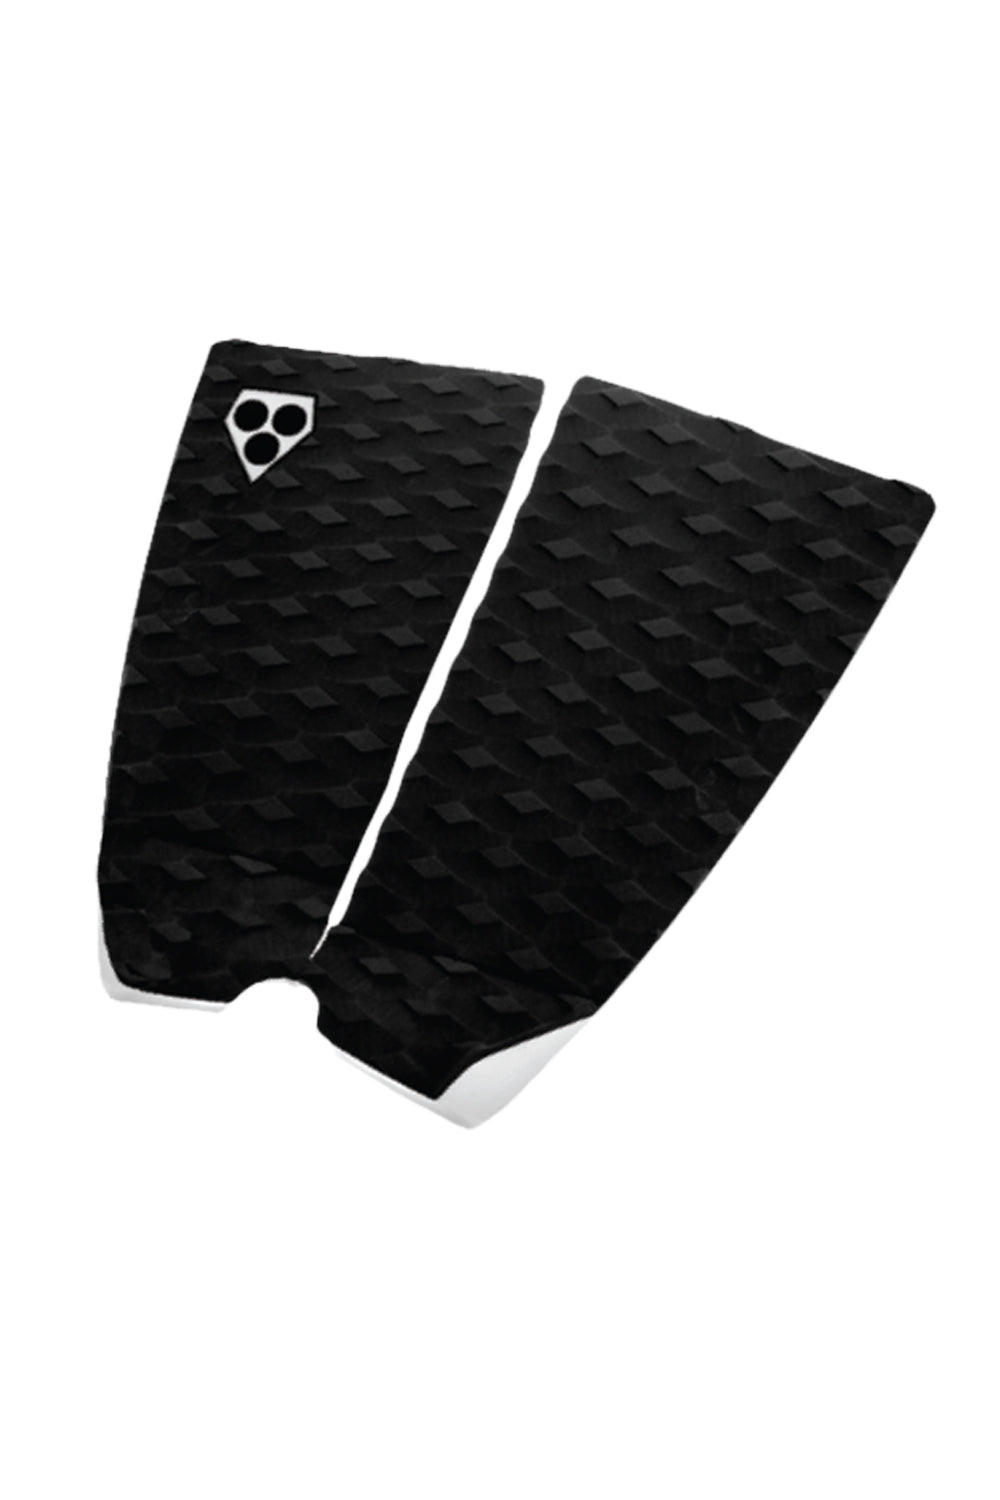 Gorilla Phat Two Tail Pad